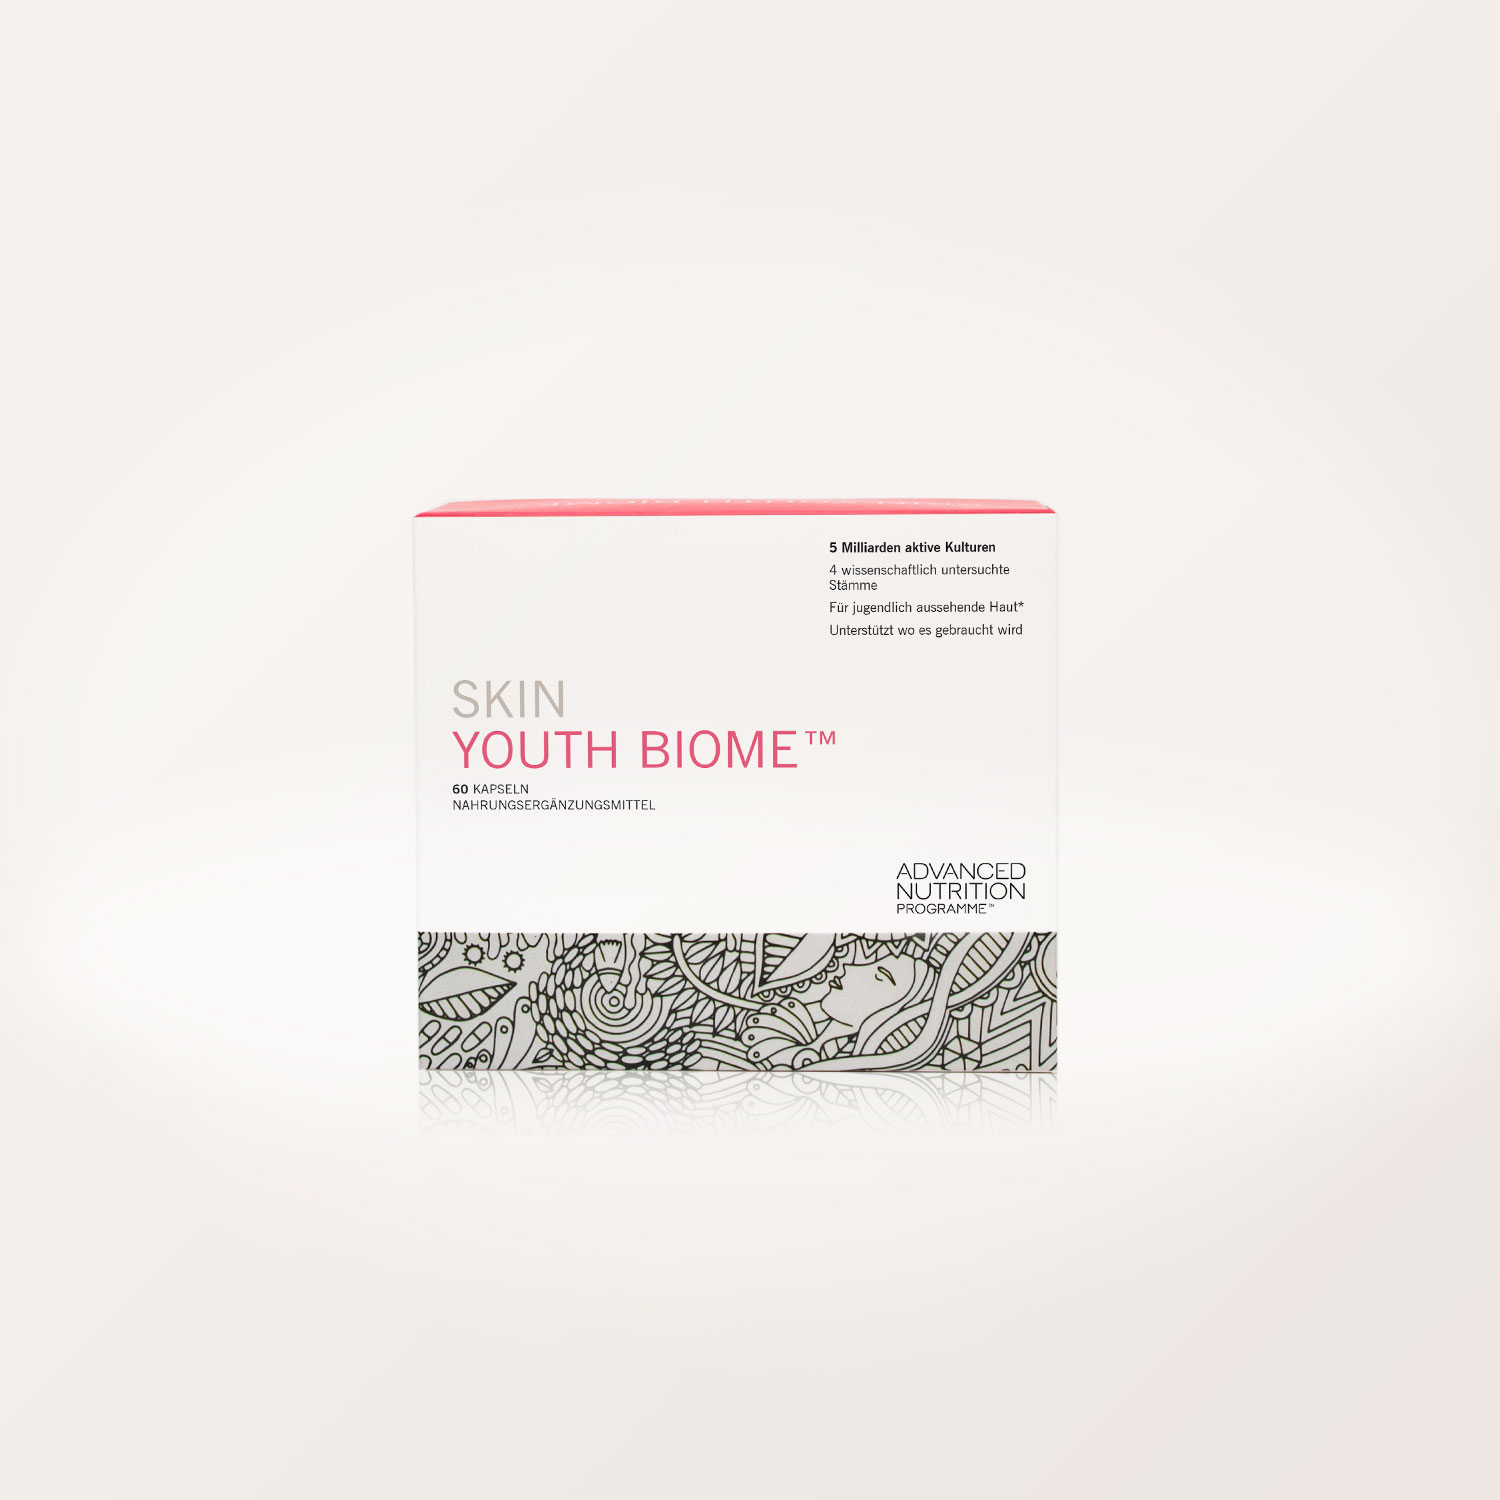 Advanced Nutrition Programme - SKIN YOUTH BIOME